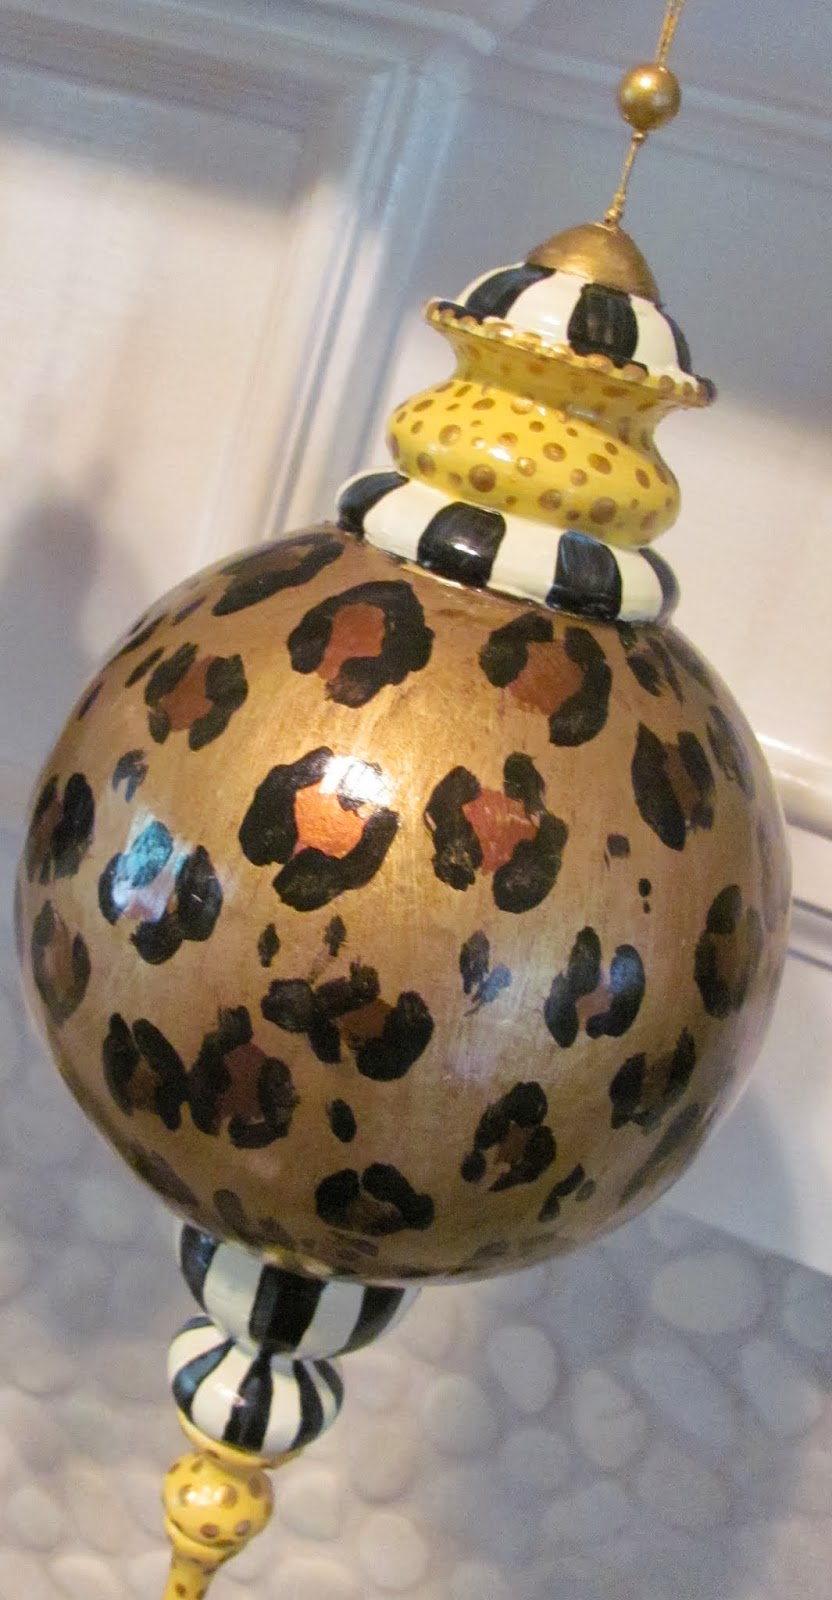 hand painted black and stripe finial ornament with animal print